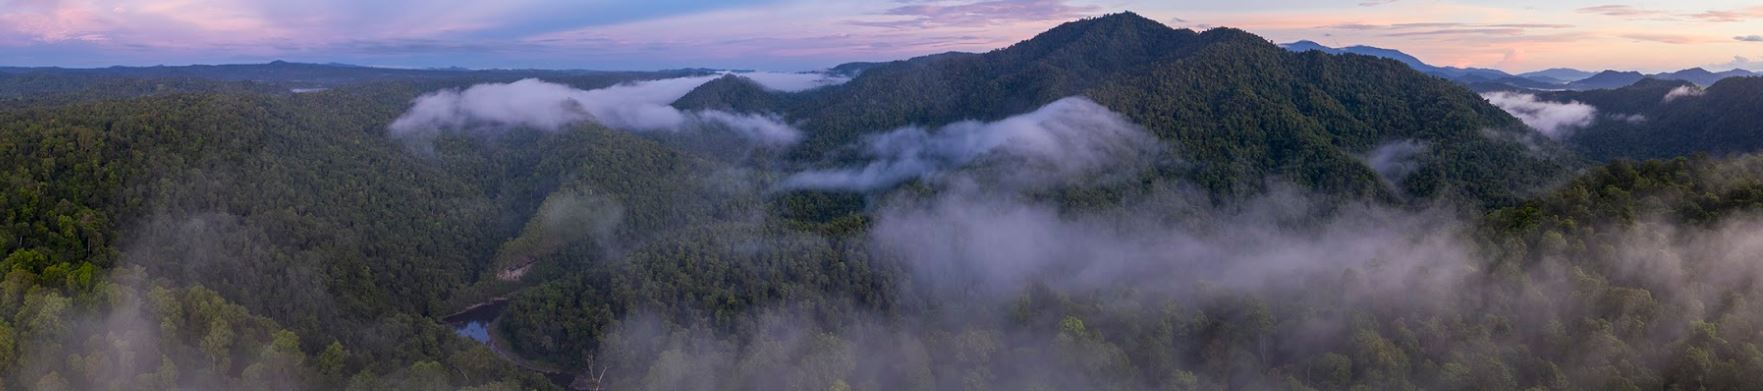 Queensland's National Parks Need Funding